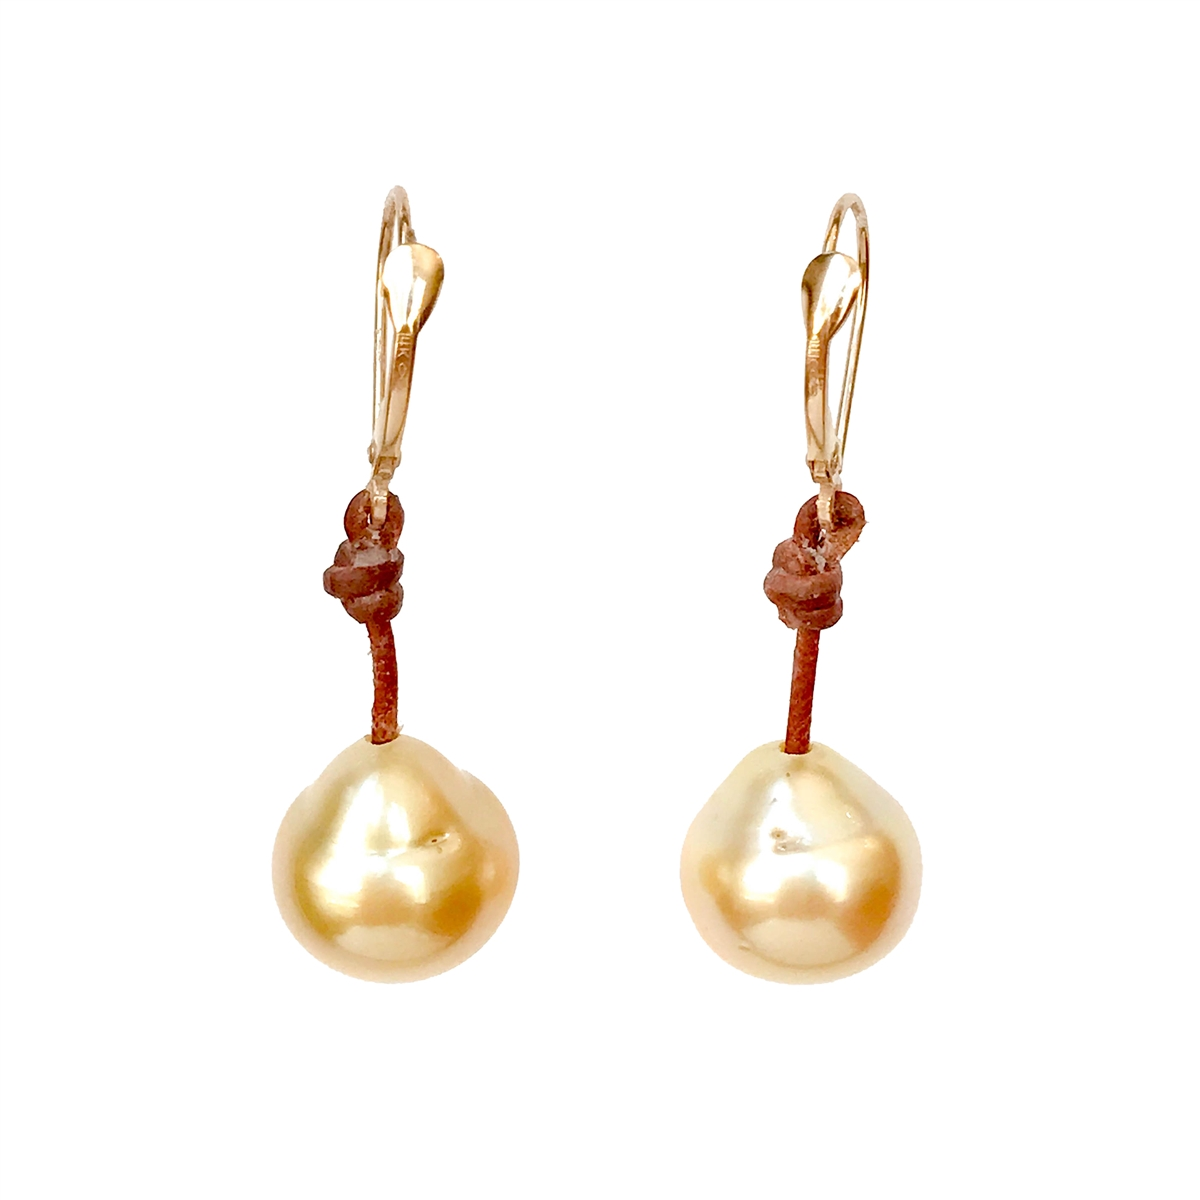 earrings single pearl kodak by digital product camera and made sapphire marianne still